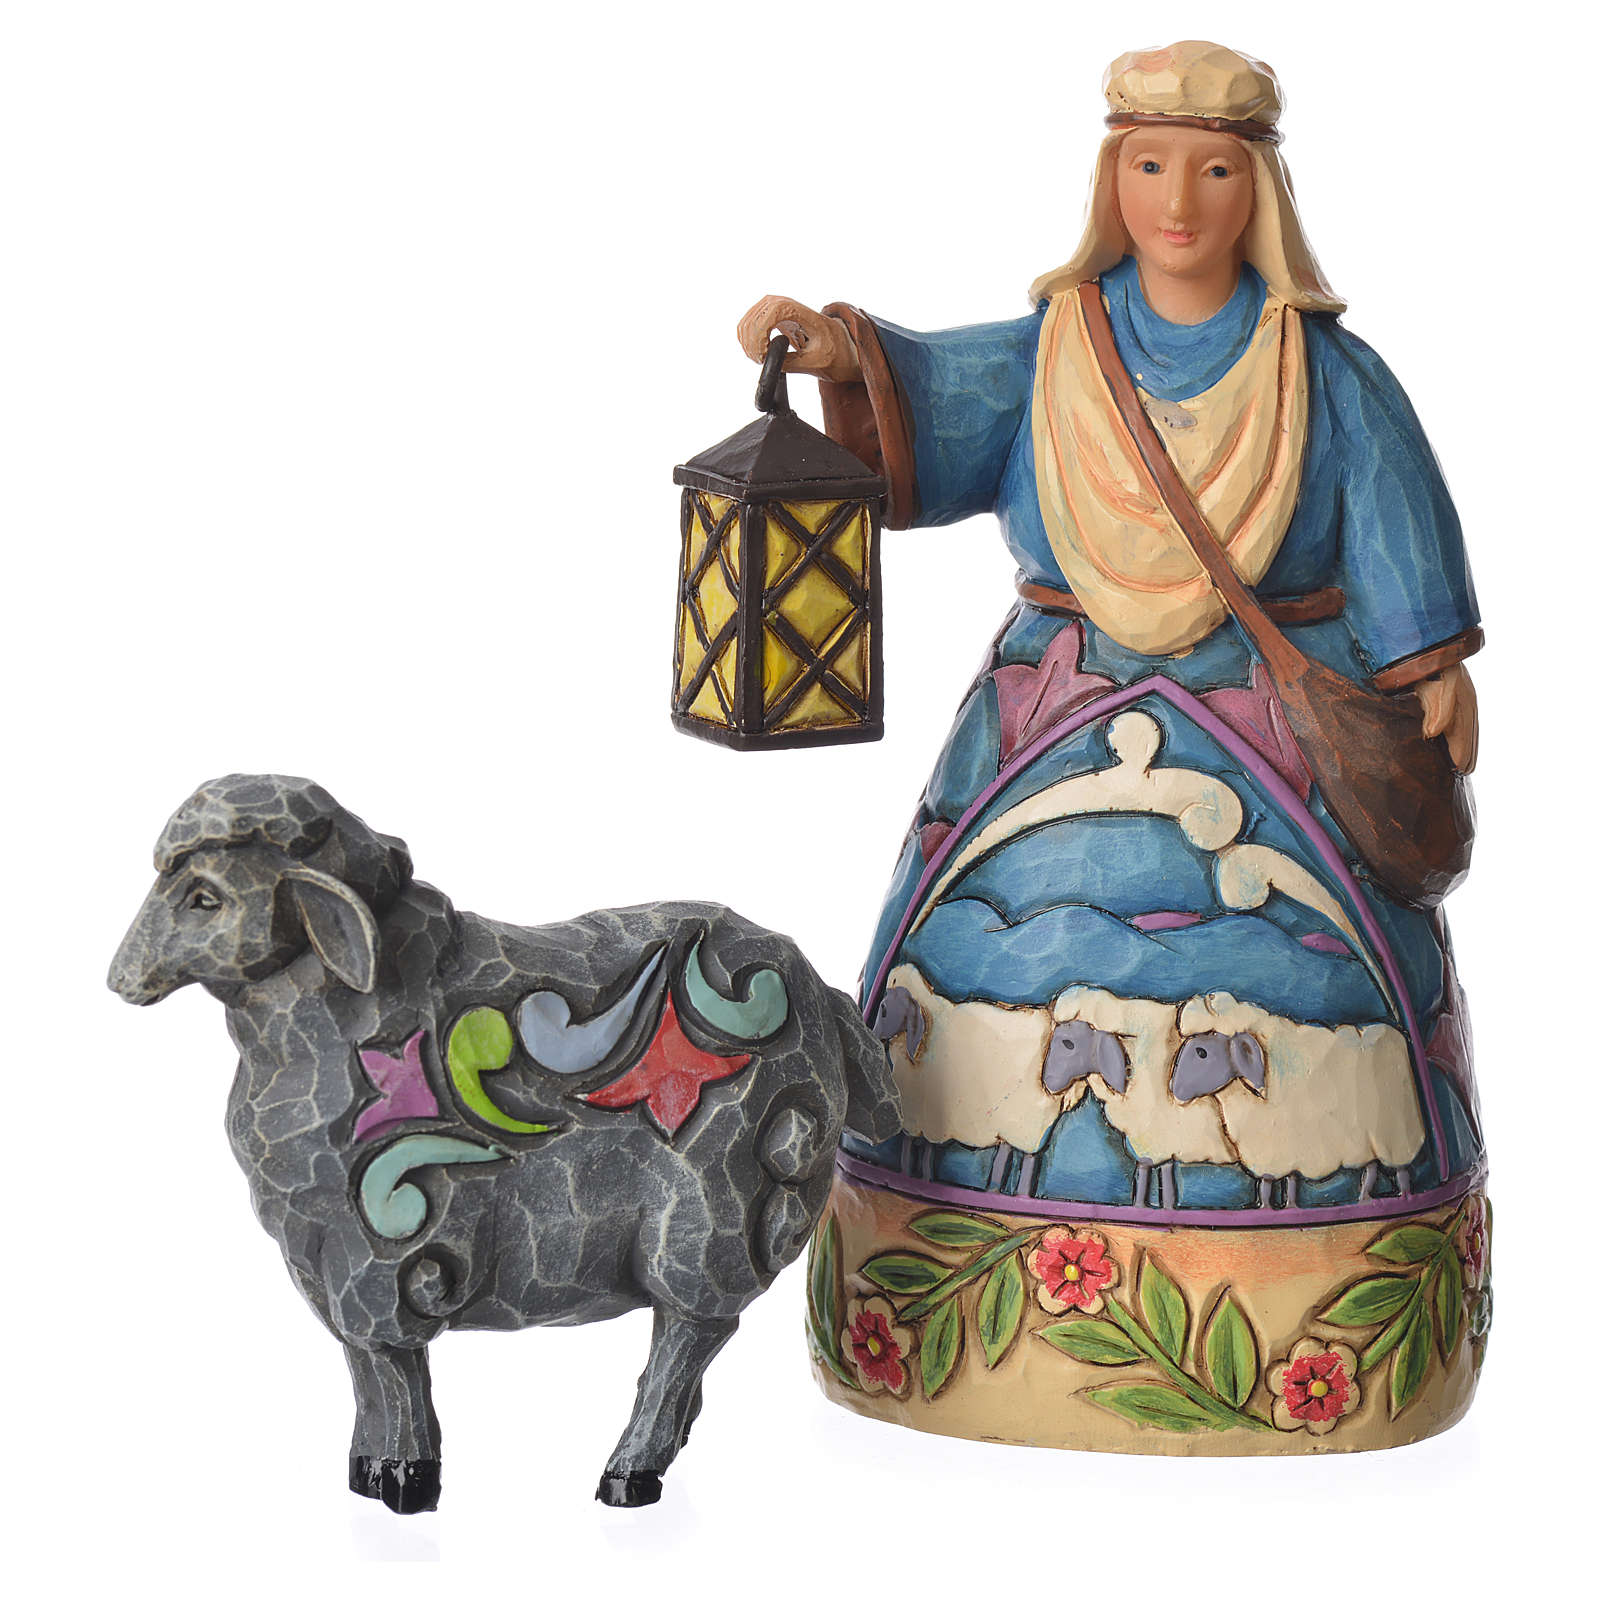 Jim Shore Mini Nativity Shepherd 10cm Figurine Online Sales On Holyart Com